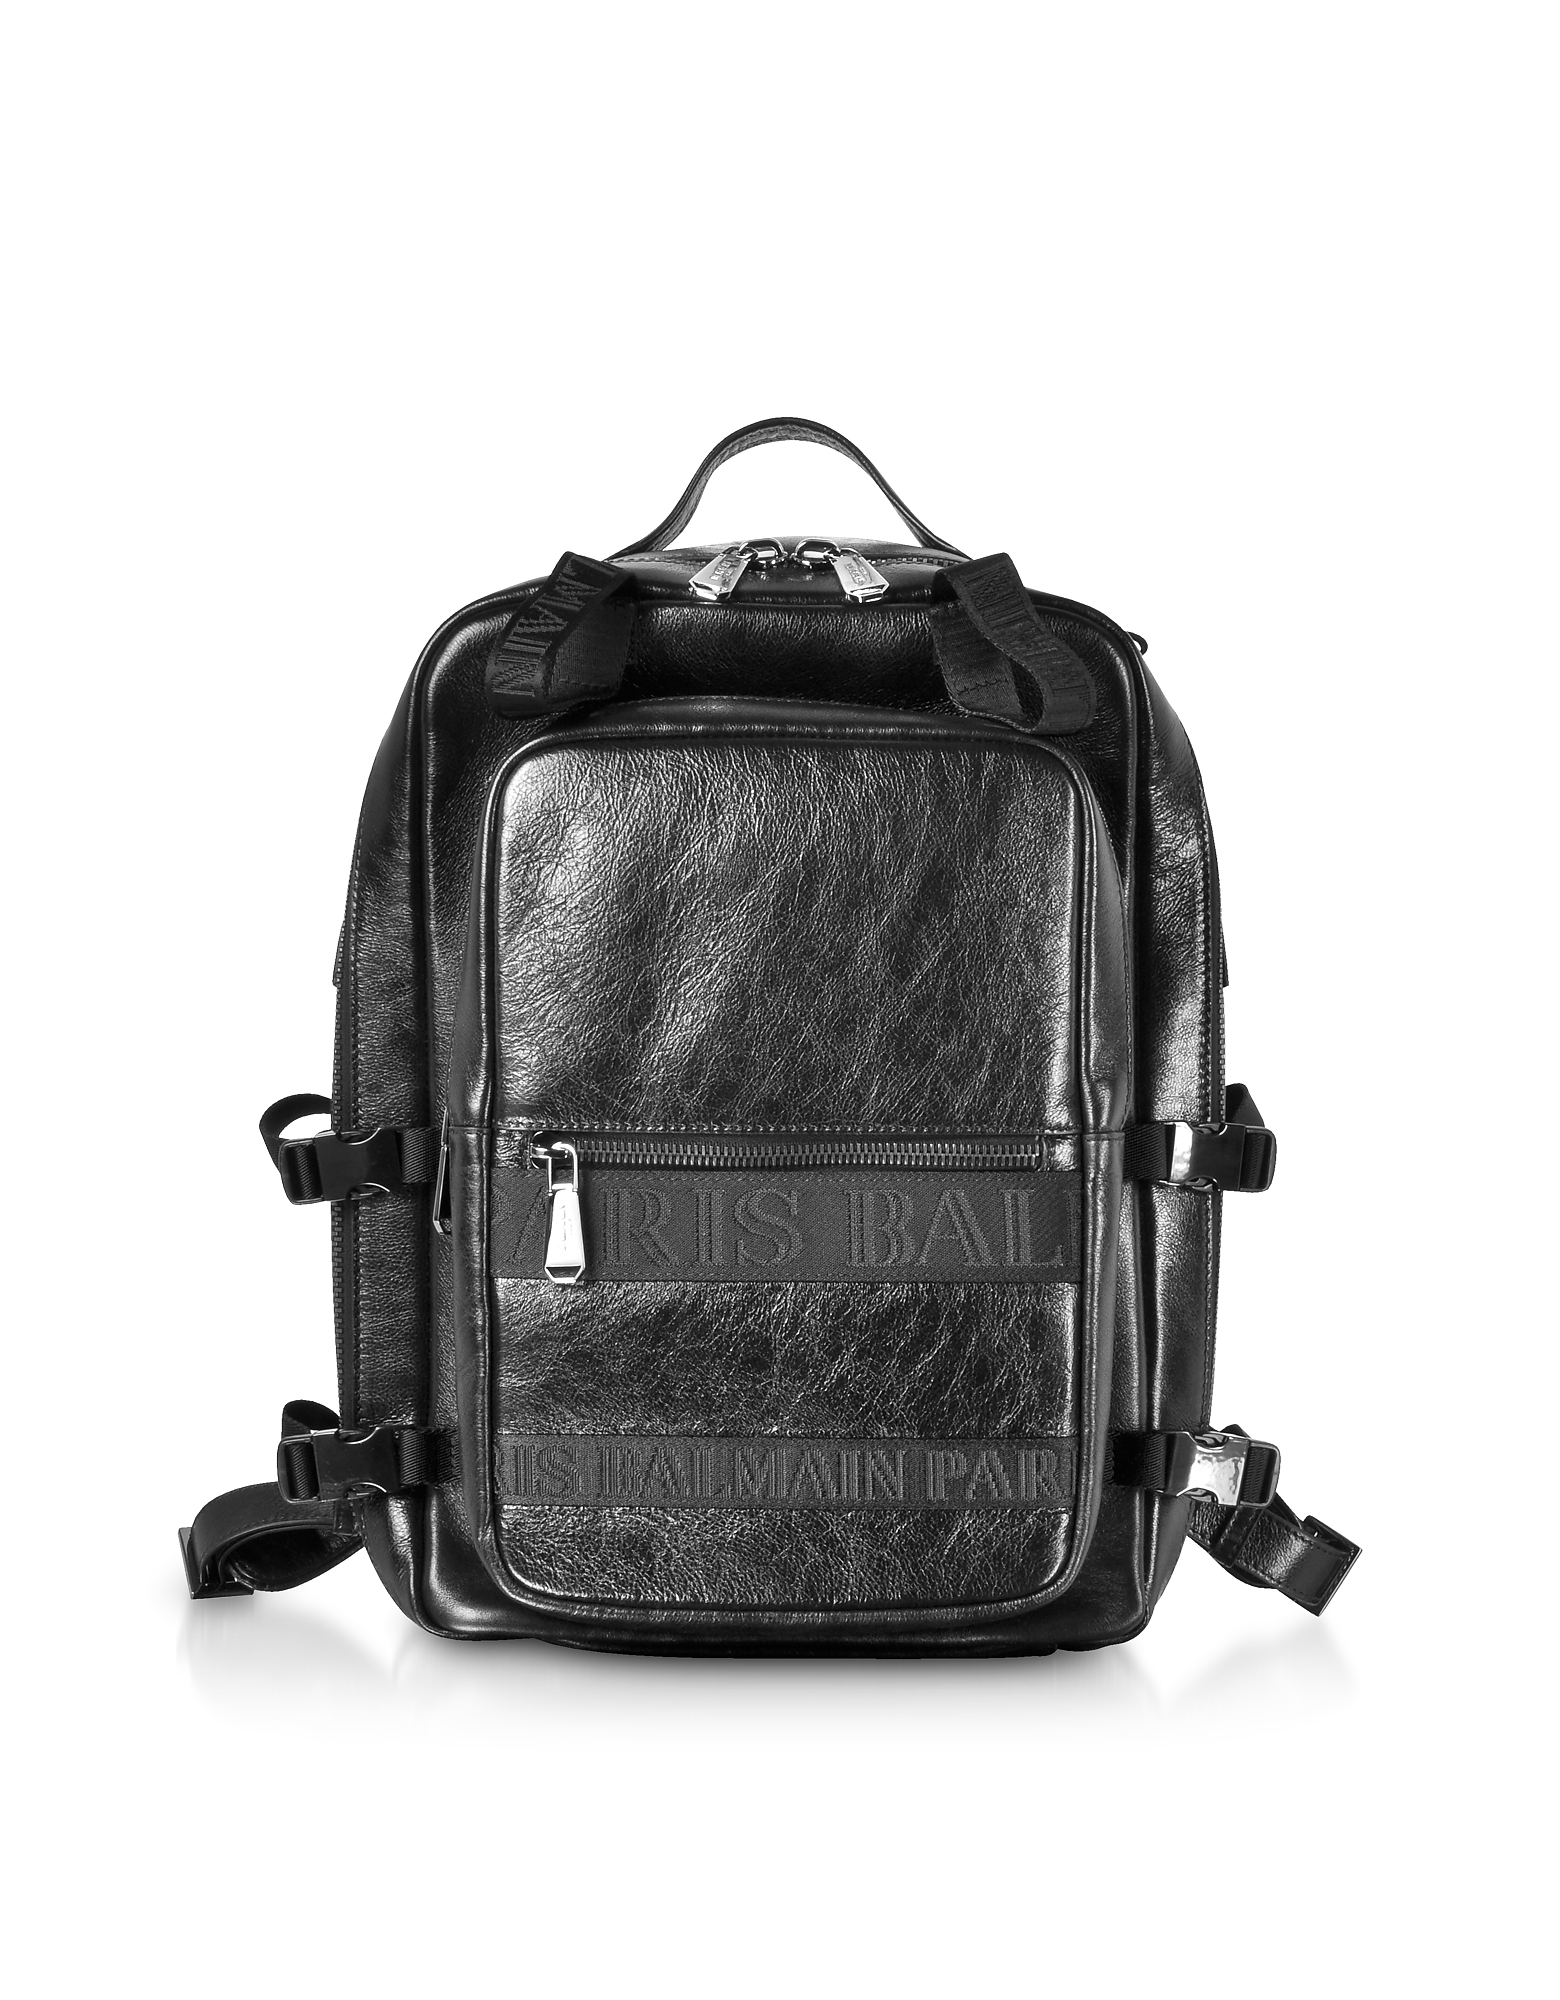 Image of Balmain Designer Backpacks, Black Finn Shiny and Distressed Leather Men's Backpack